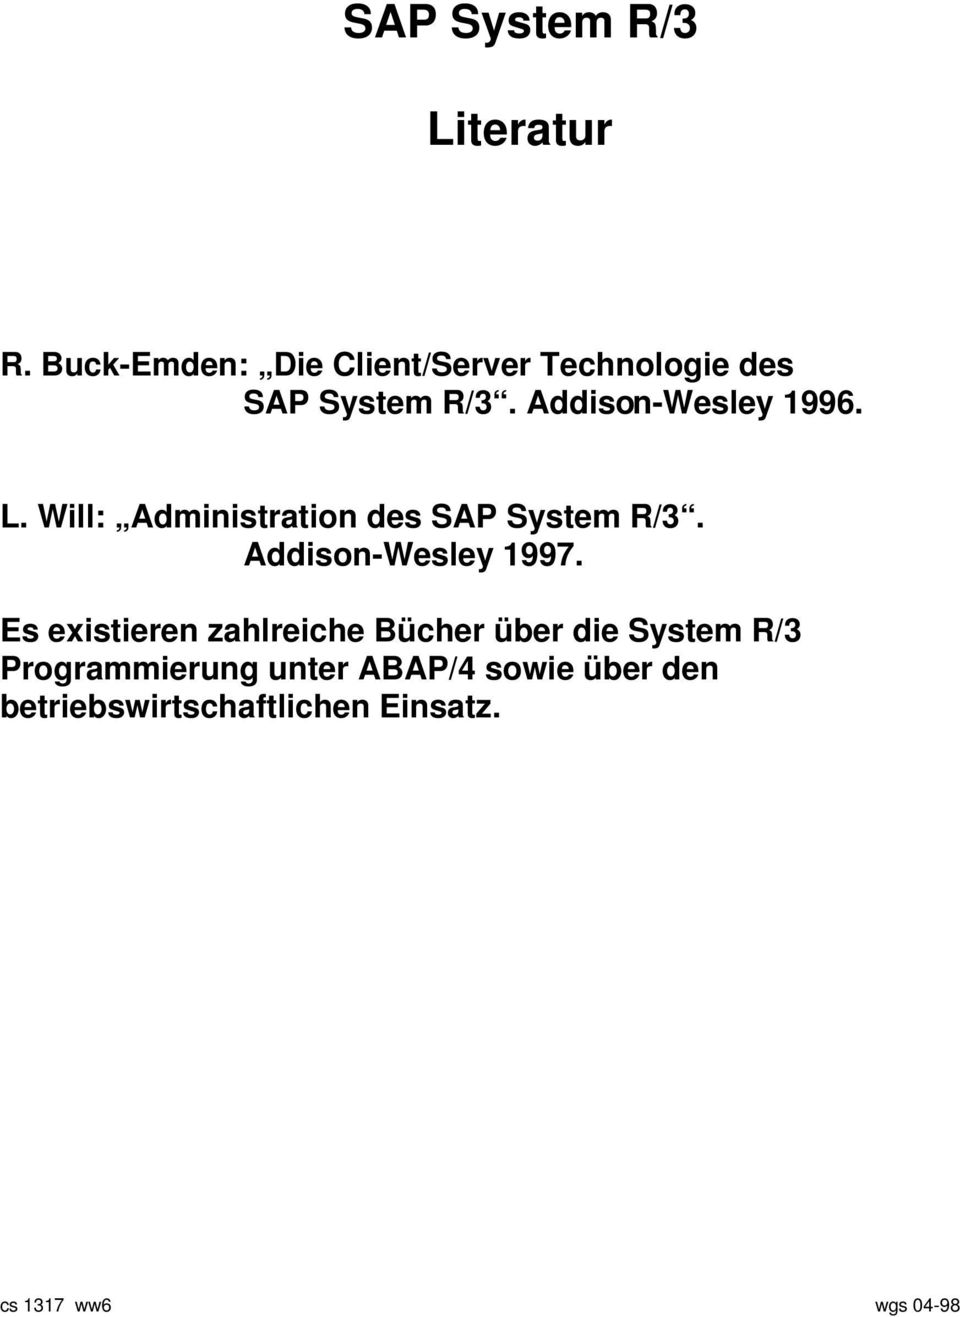 L. Will: Administration des SAP System R/3. Addison-Wesley 1997.